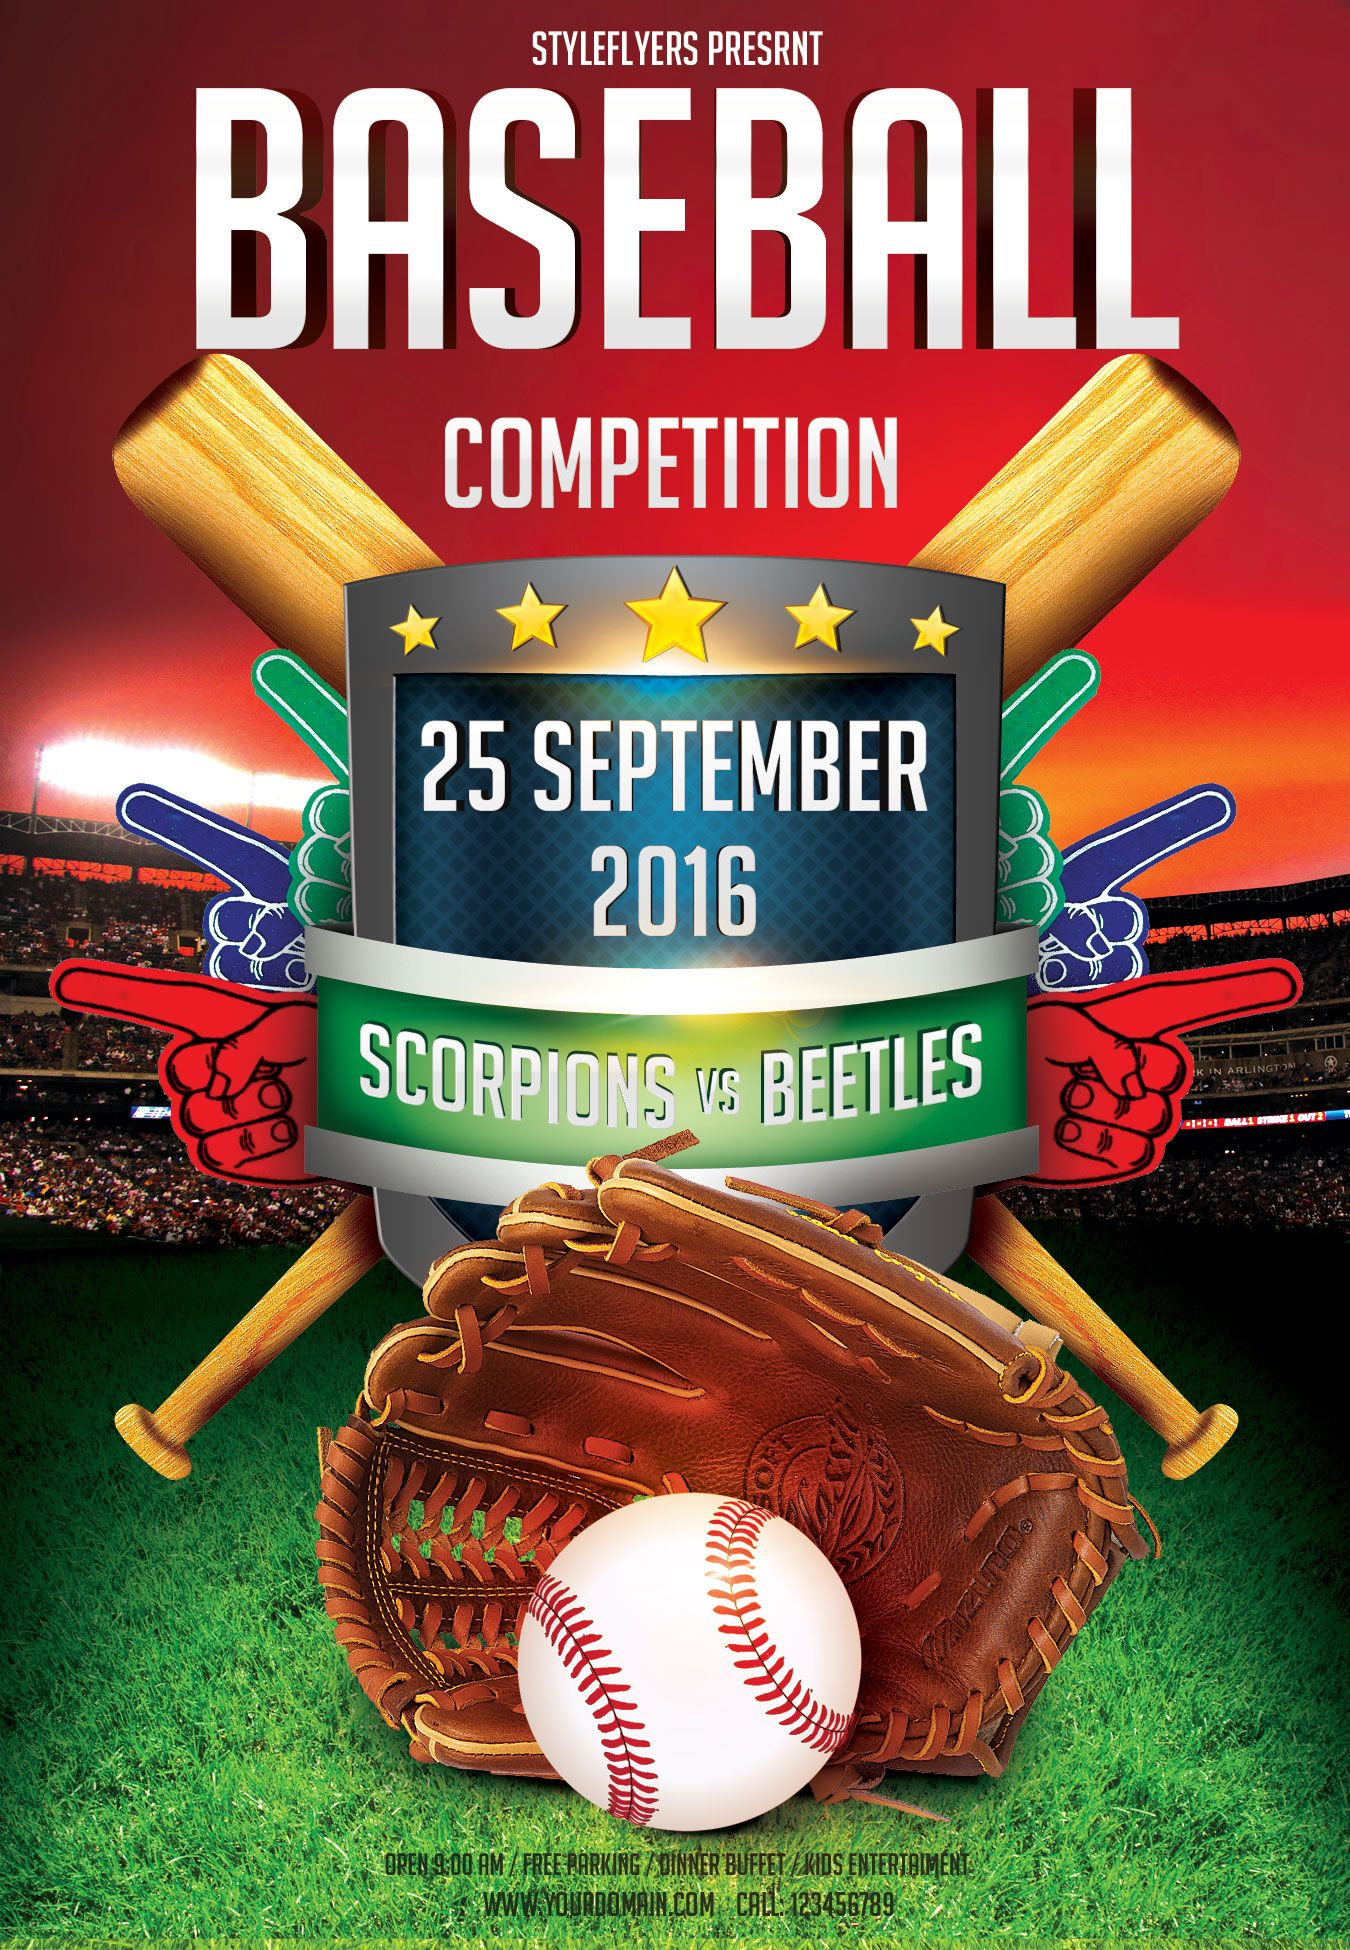 free baseball psd flyer template is waiting for you download it right now